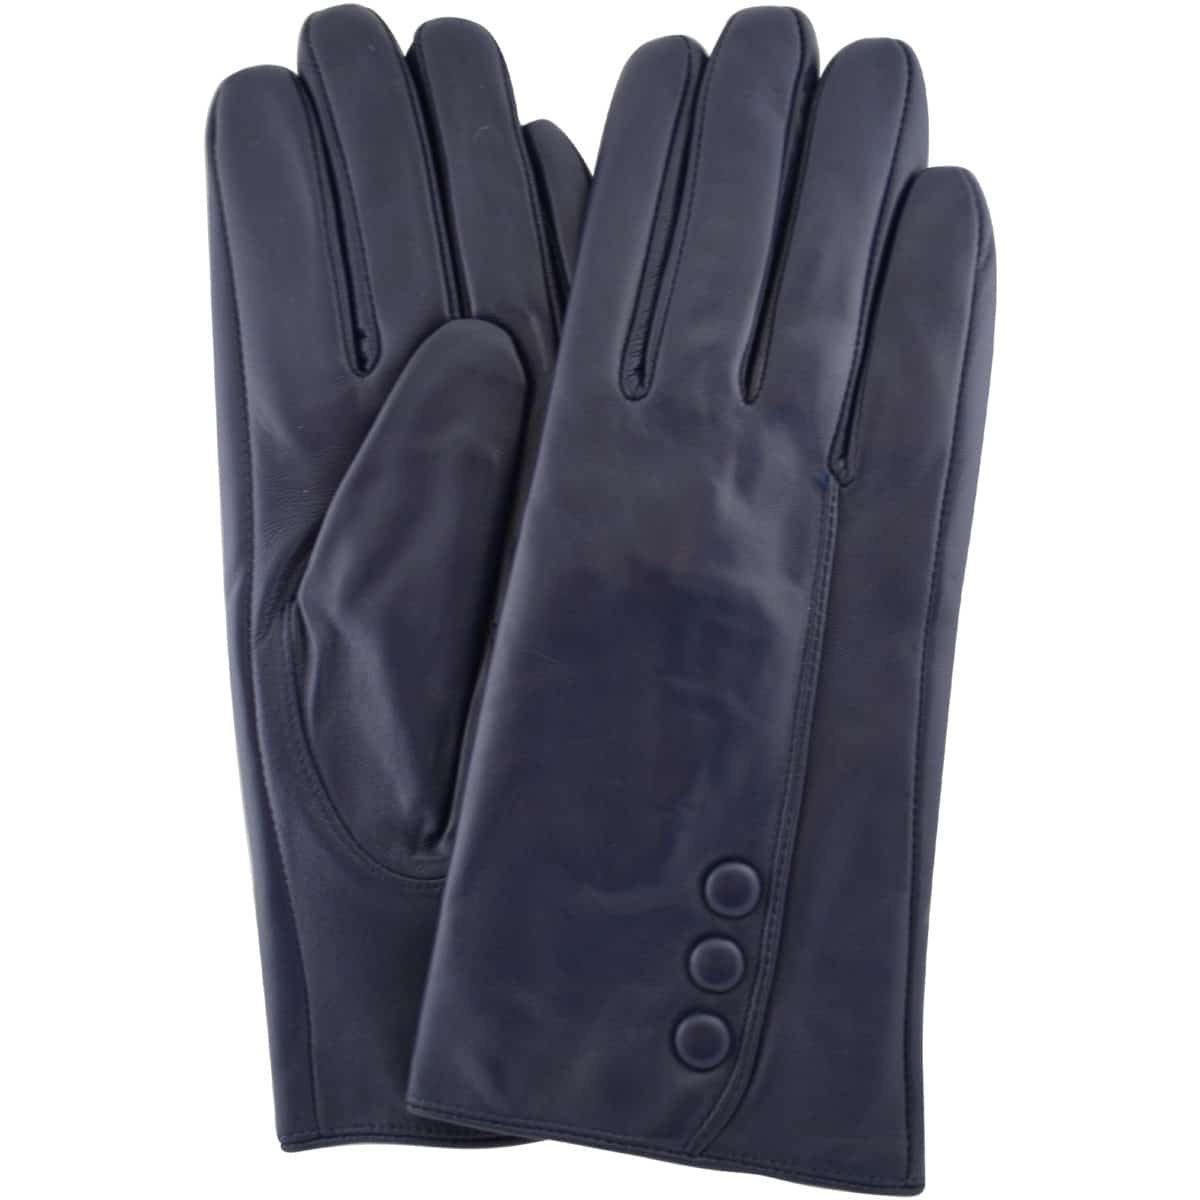 Rhian - Leather Gloves Triple Button Feature - Navy